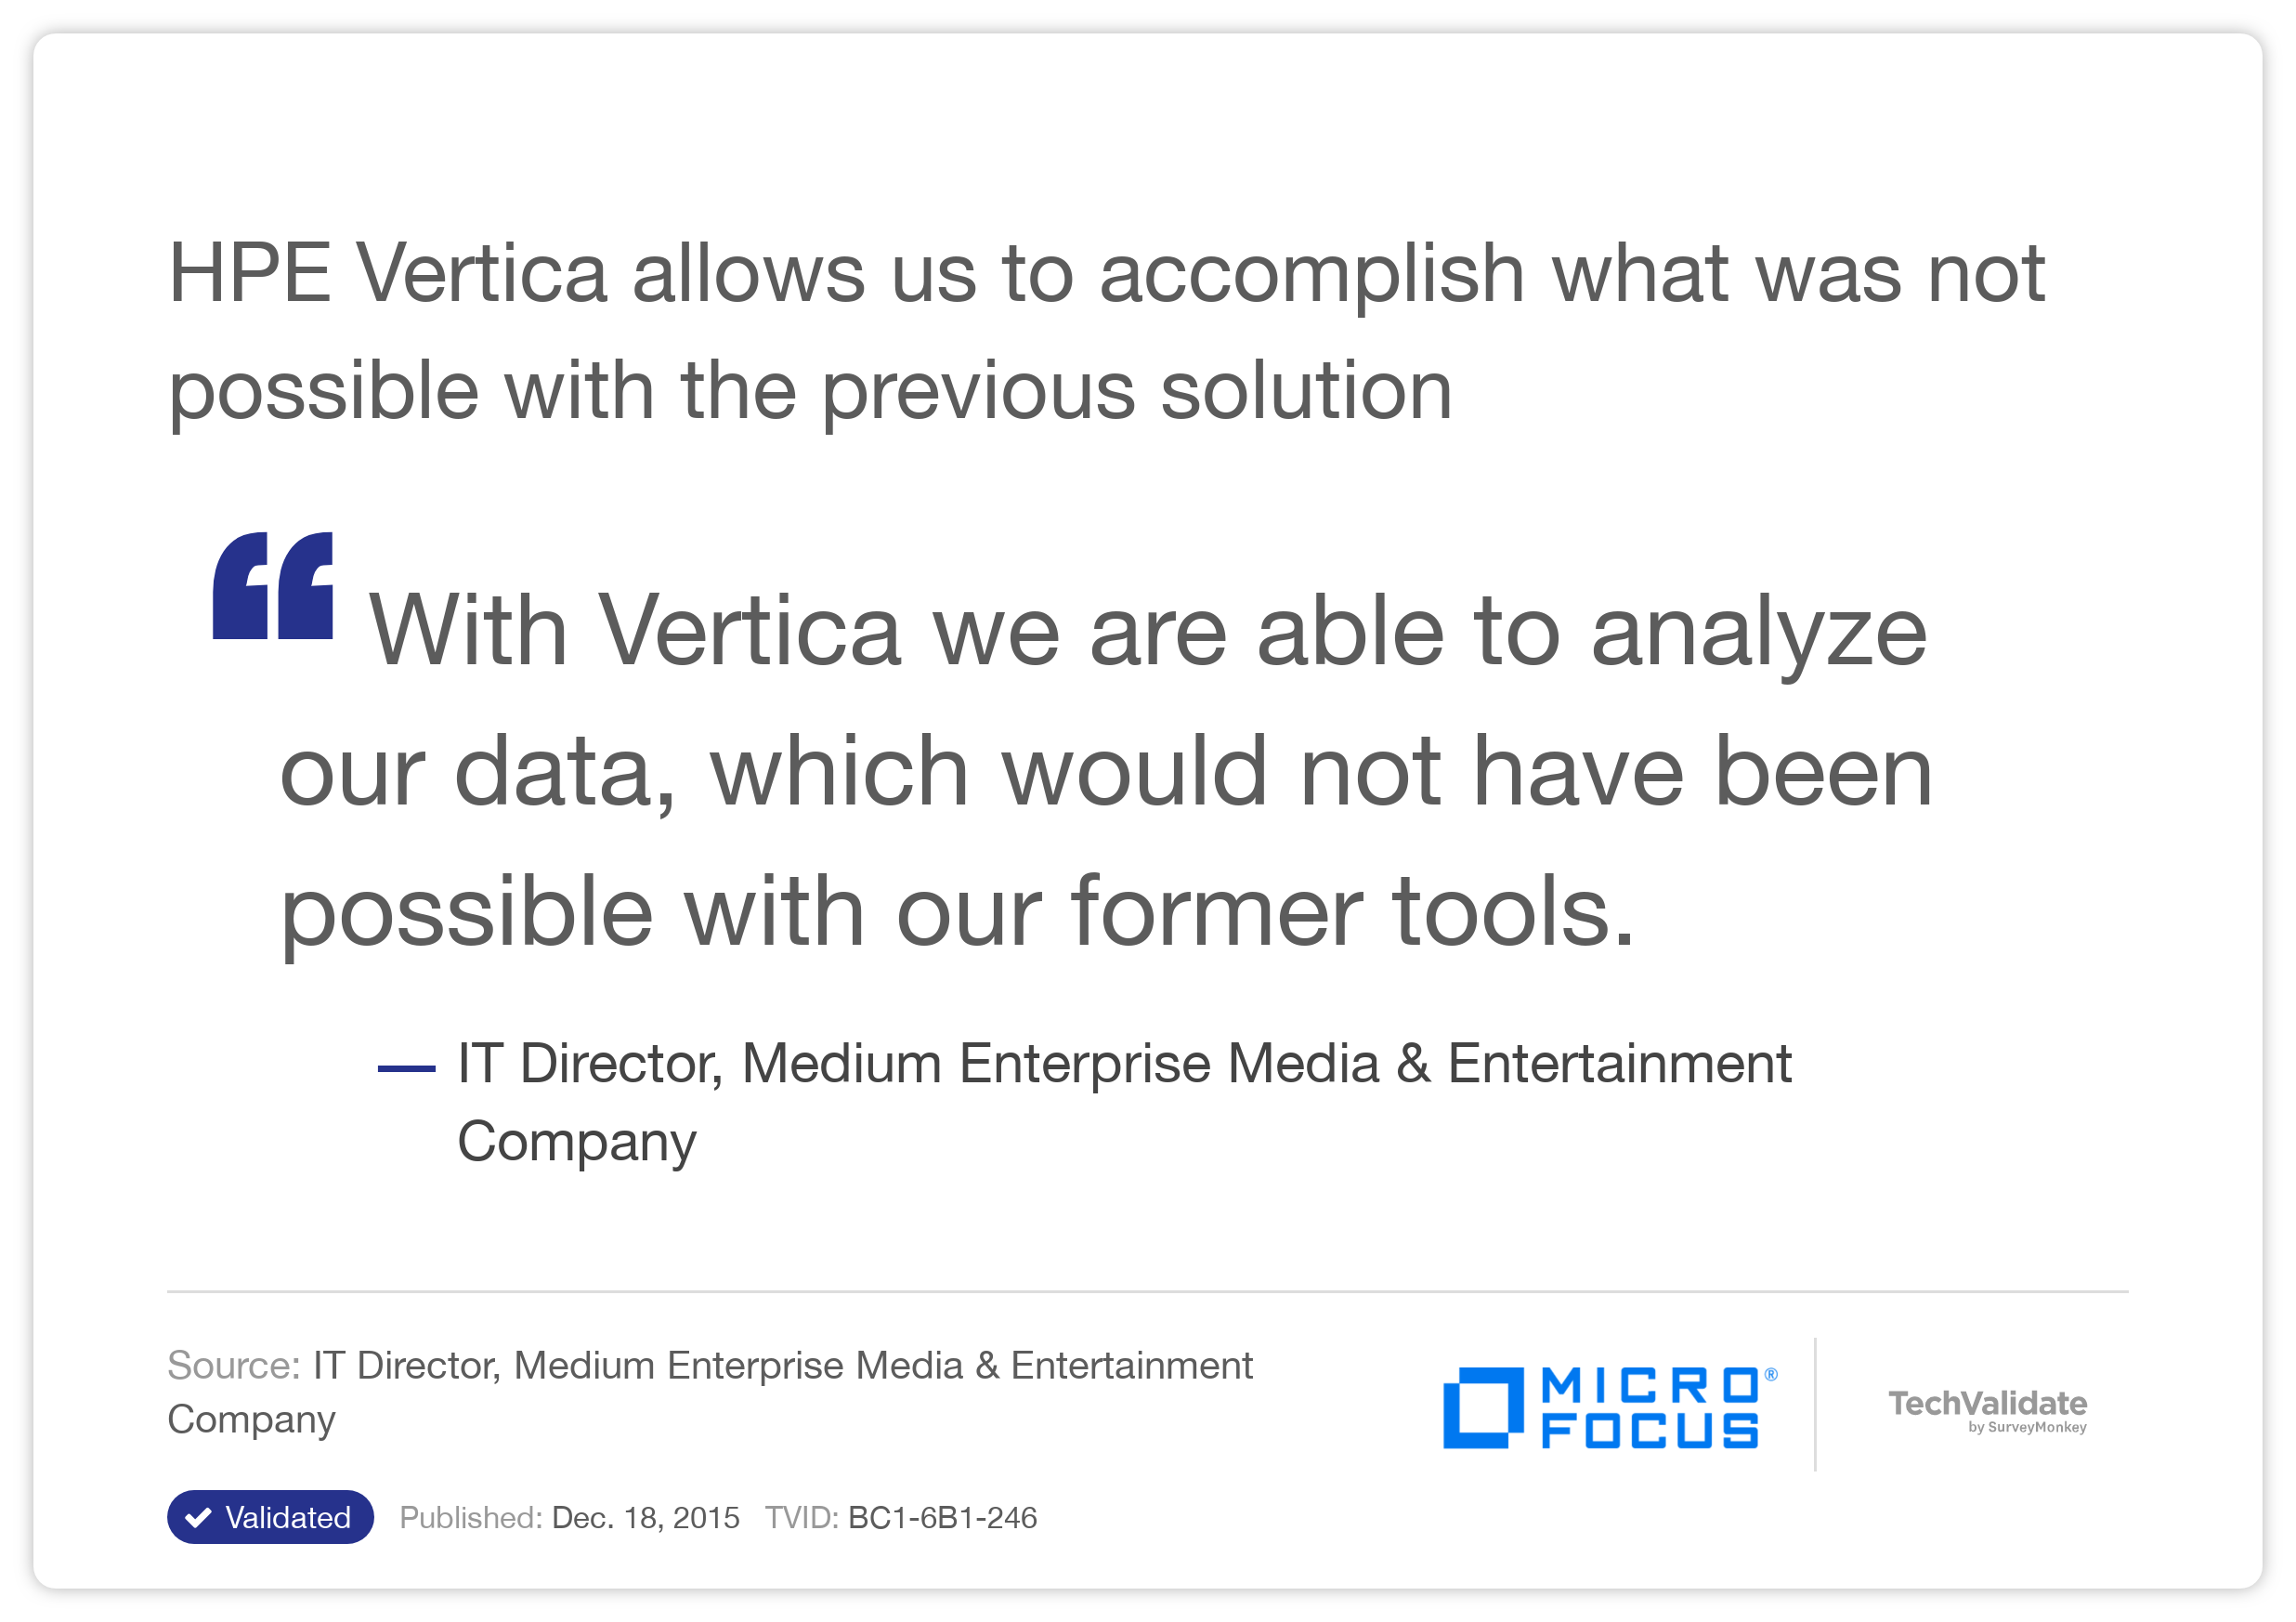 HP Vertica allows us to accomplish what was not possible with the previous solution